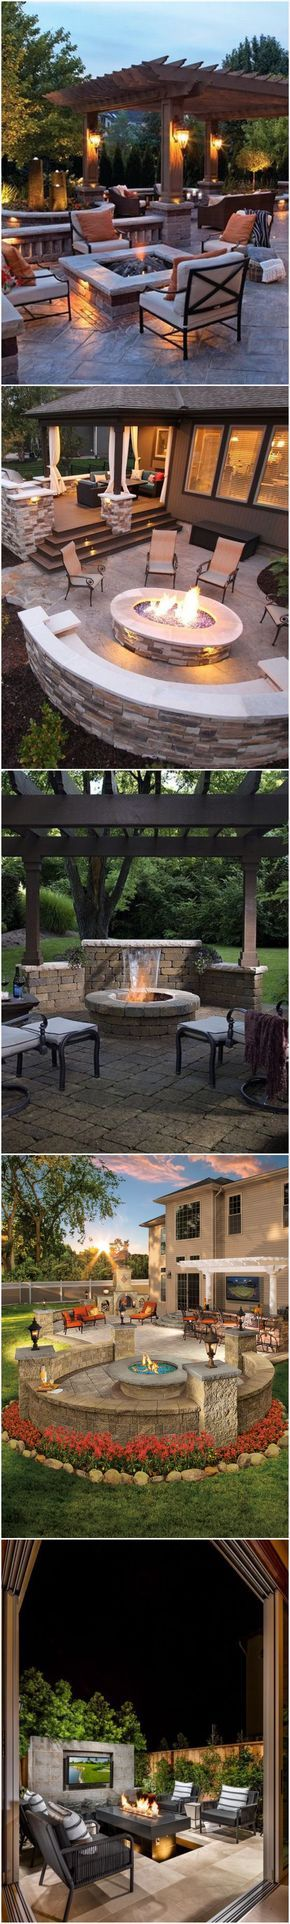 Patio Design Ideas With Fire Pits small backyard fire pit designs images of backyard with fire pit landscaping ideas patiofurn images of 54 Exceptional Outdoor Living Spaces Fire Pit Designsoutdoor